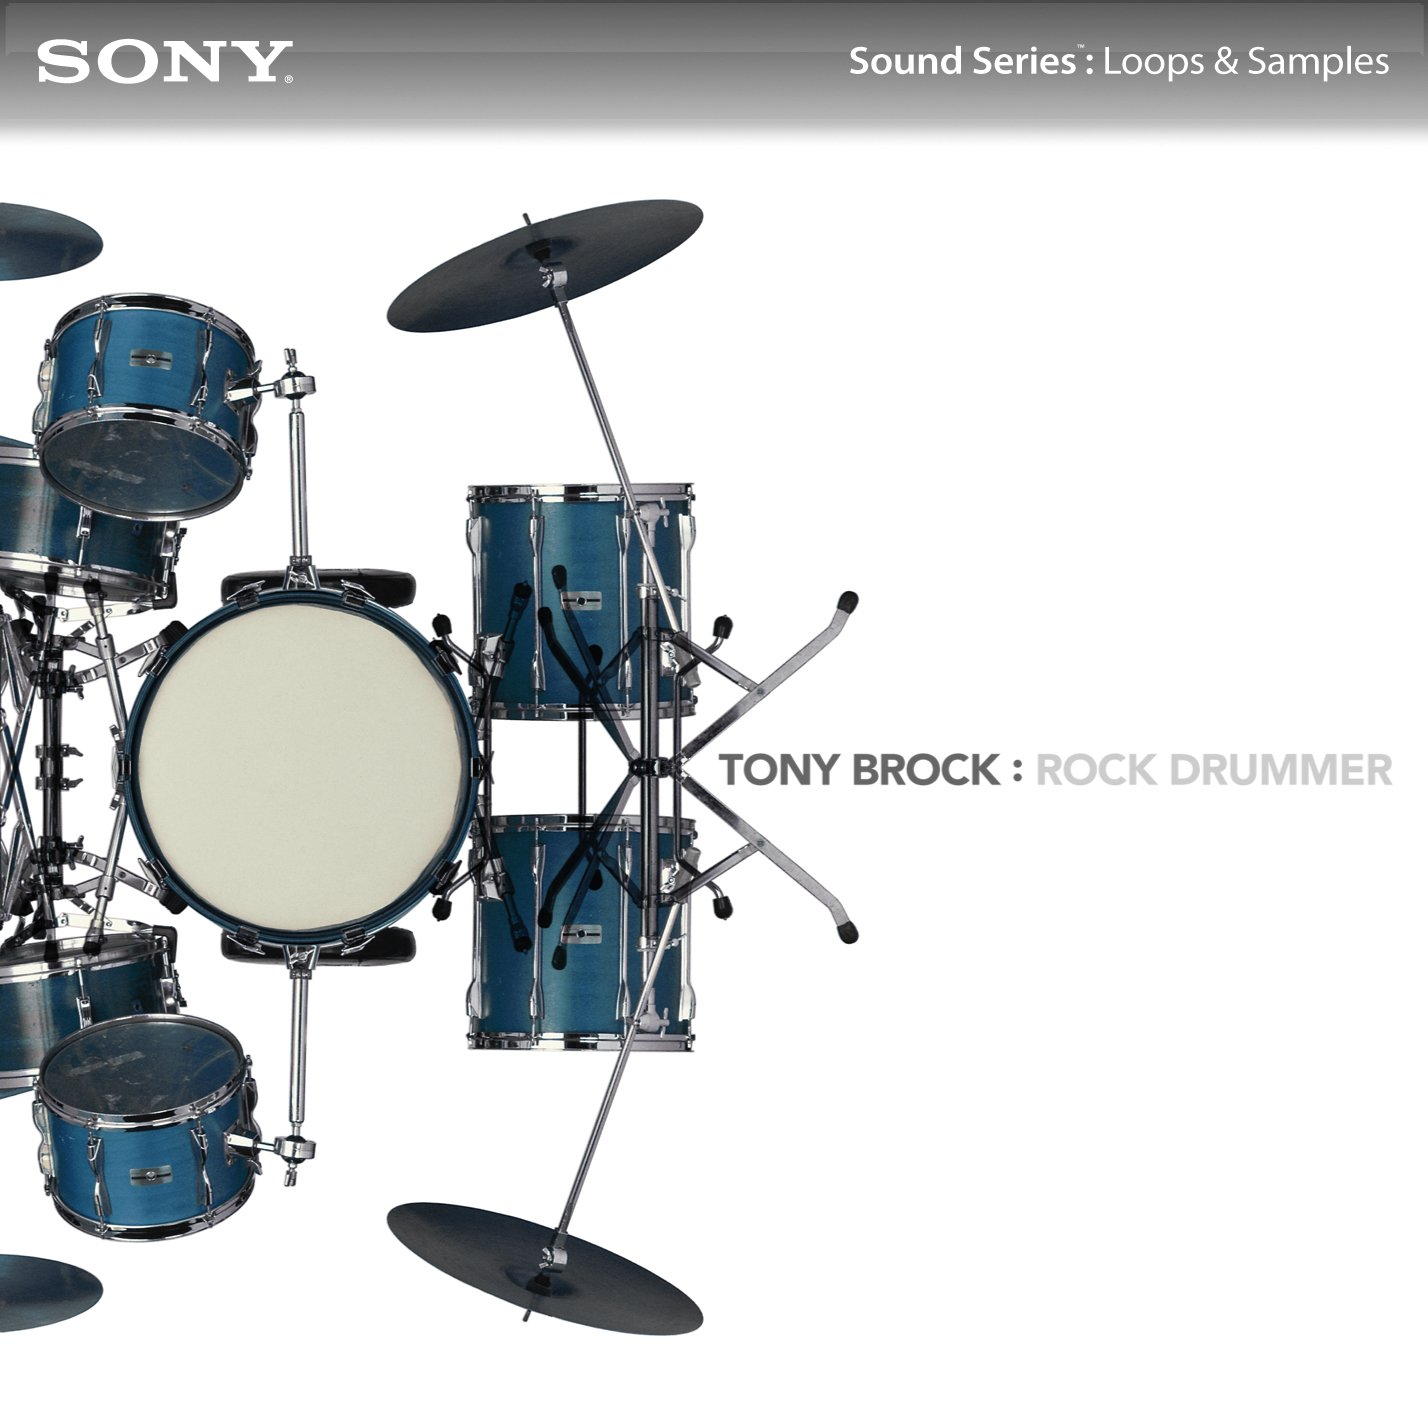 Tony Brock: Rock Drummer [Old Version] by Sony Creative Software